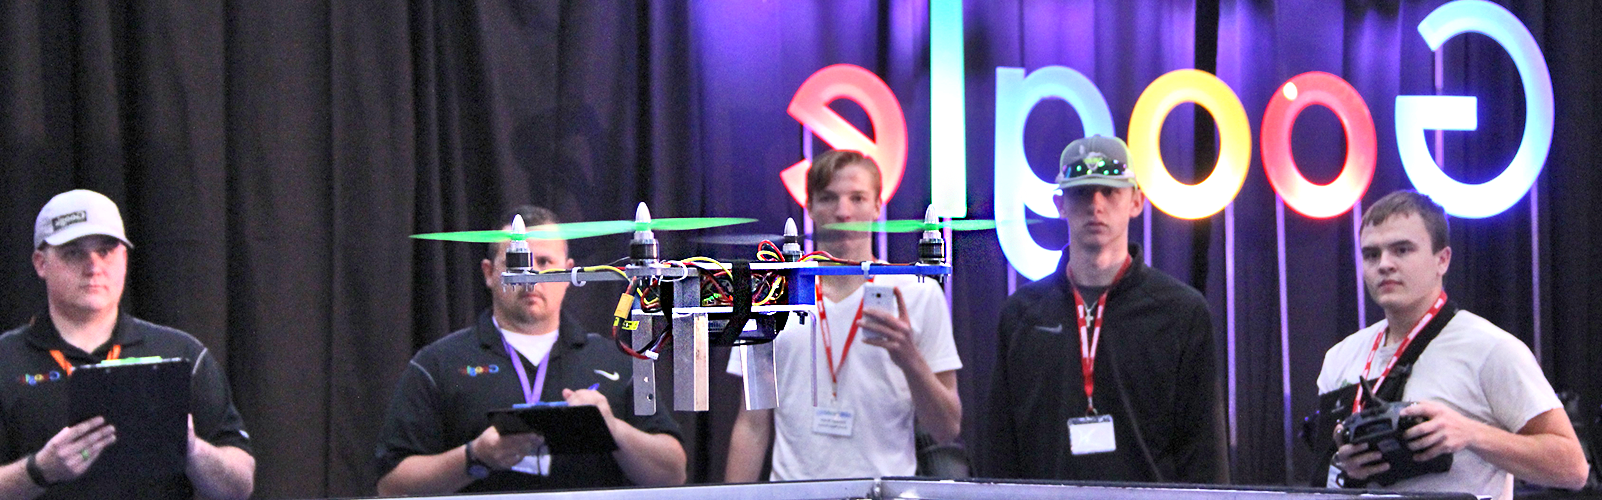 Boy flying drone with team and judges watching